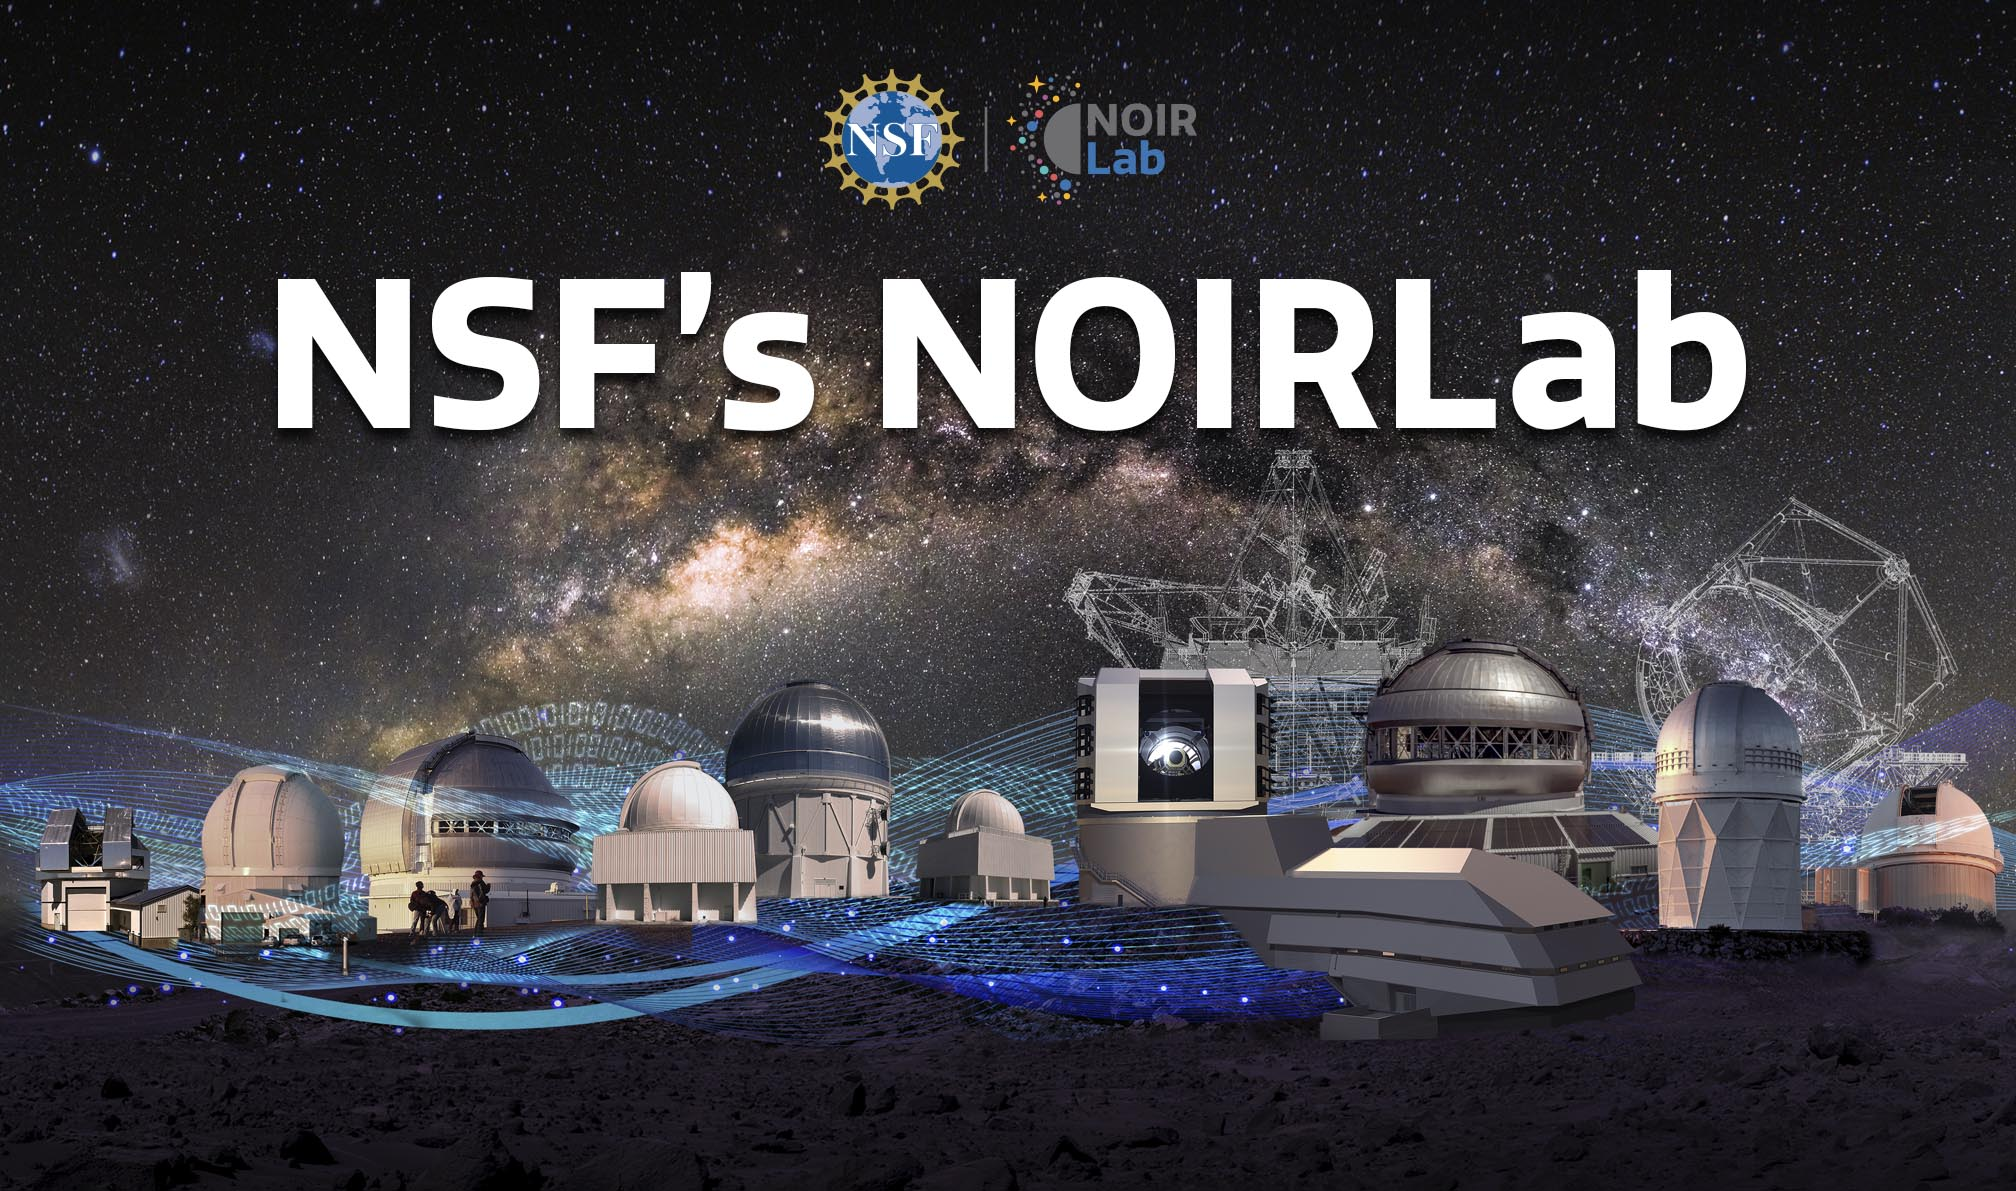 Photo montage of the the telescopes of NOIRLab with data flowing in-between